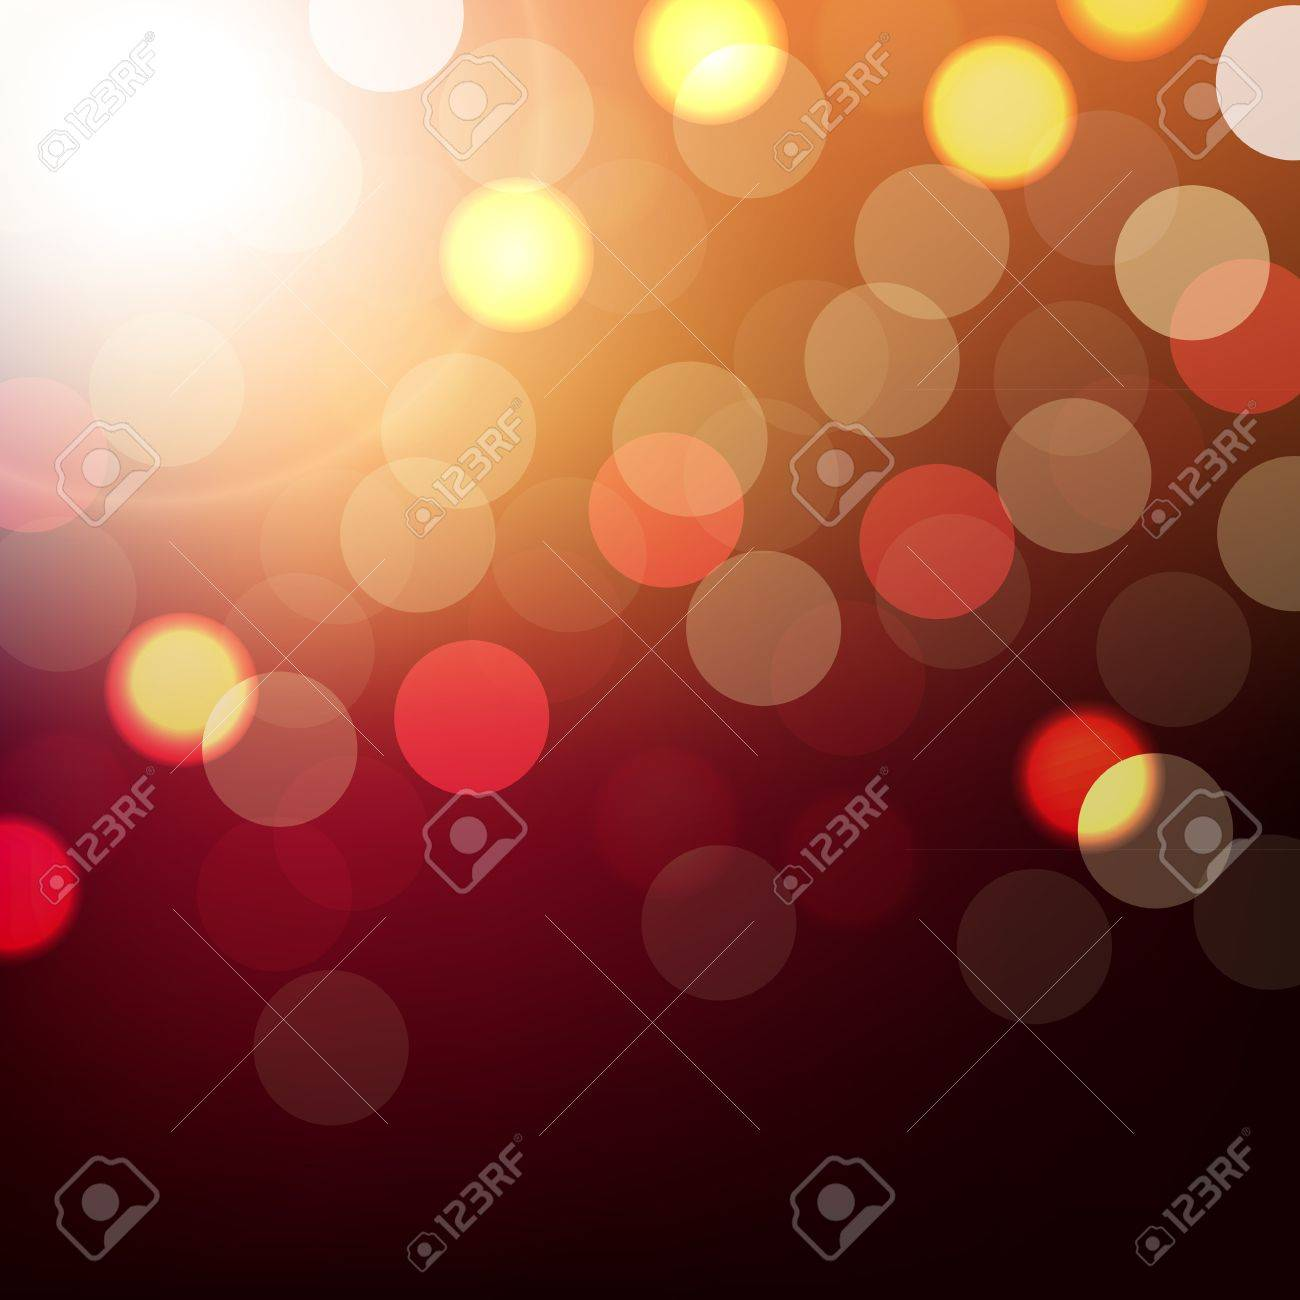 Background With Bokeh With Gradient Mesh, Vector Illustration Stock Vector - 17331844